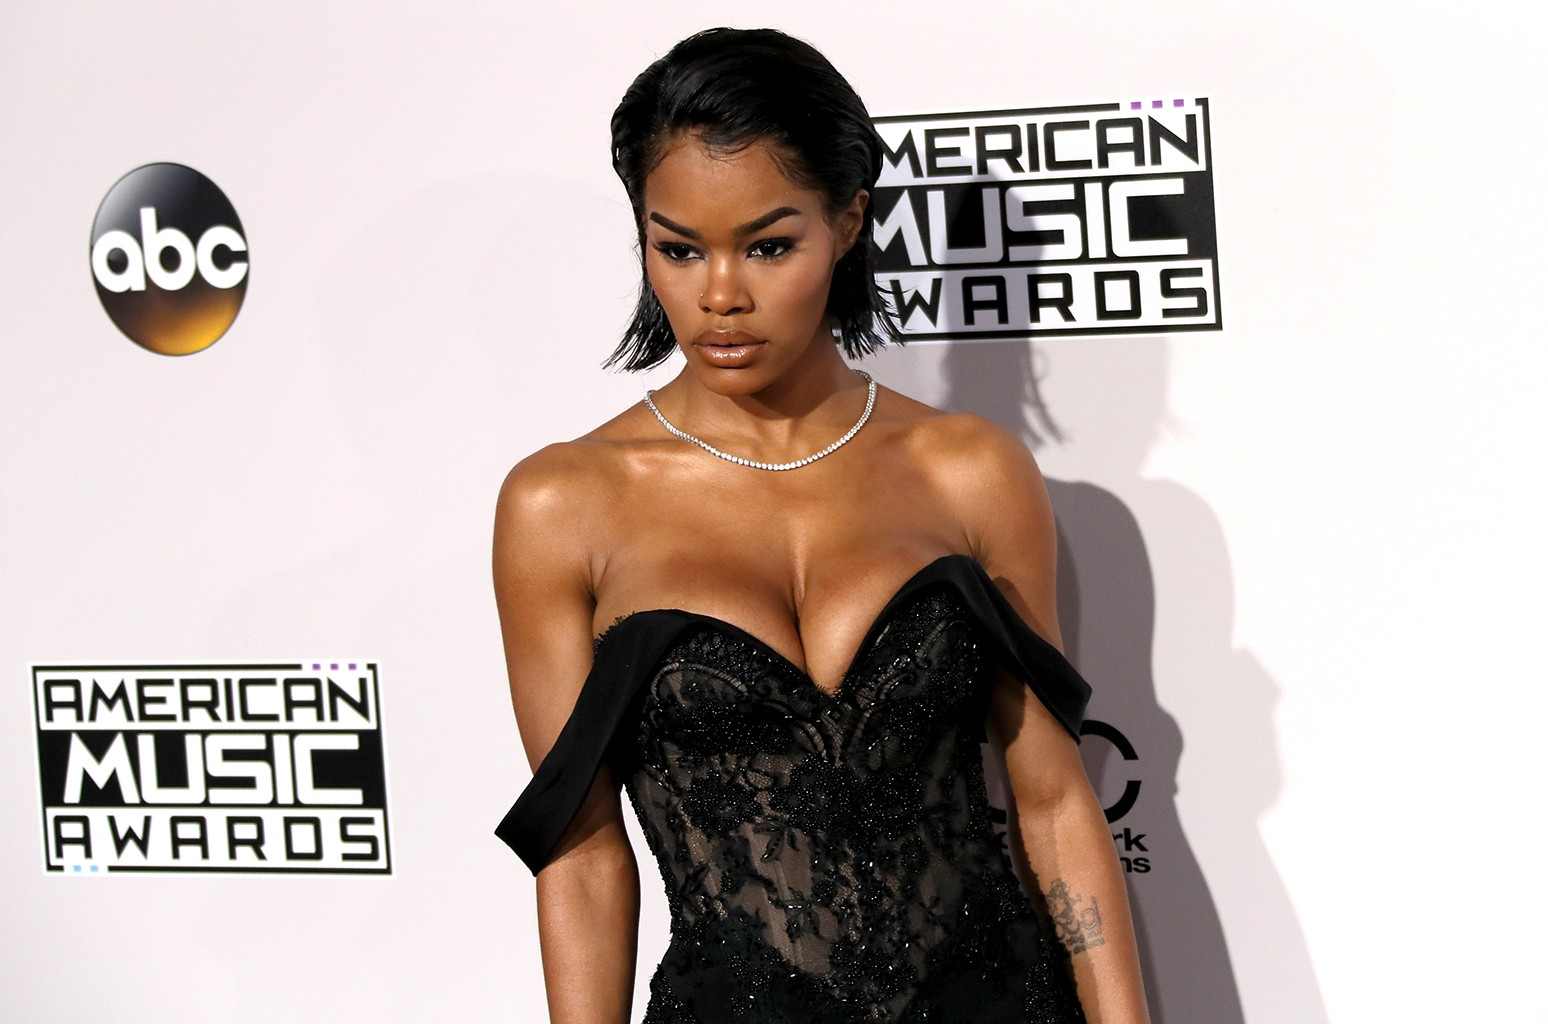 Teyana Taylor attends the 2016 American Music Awards at Microsoft Theater on Nov. 20, 2016 in Los Angeles.